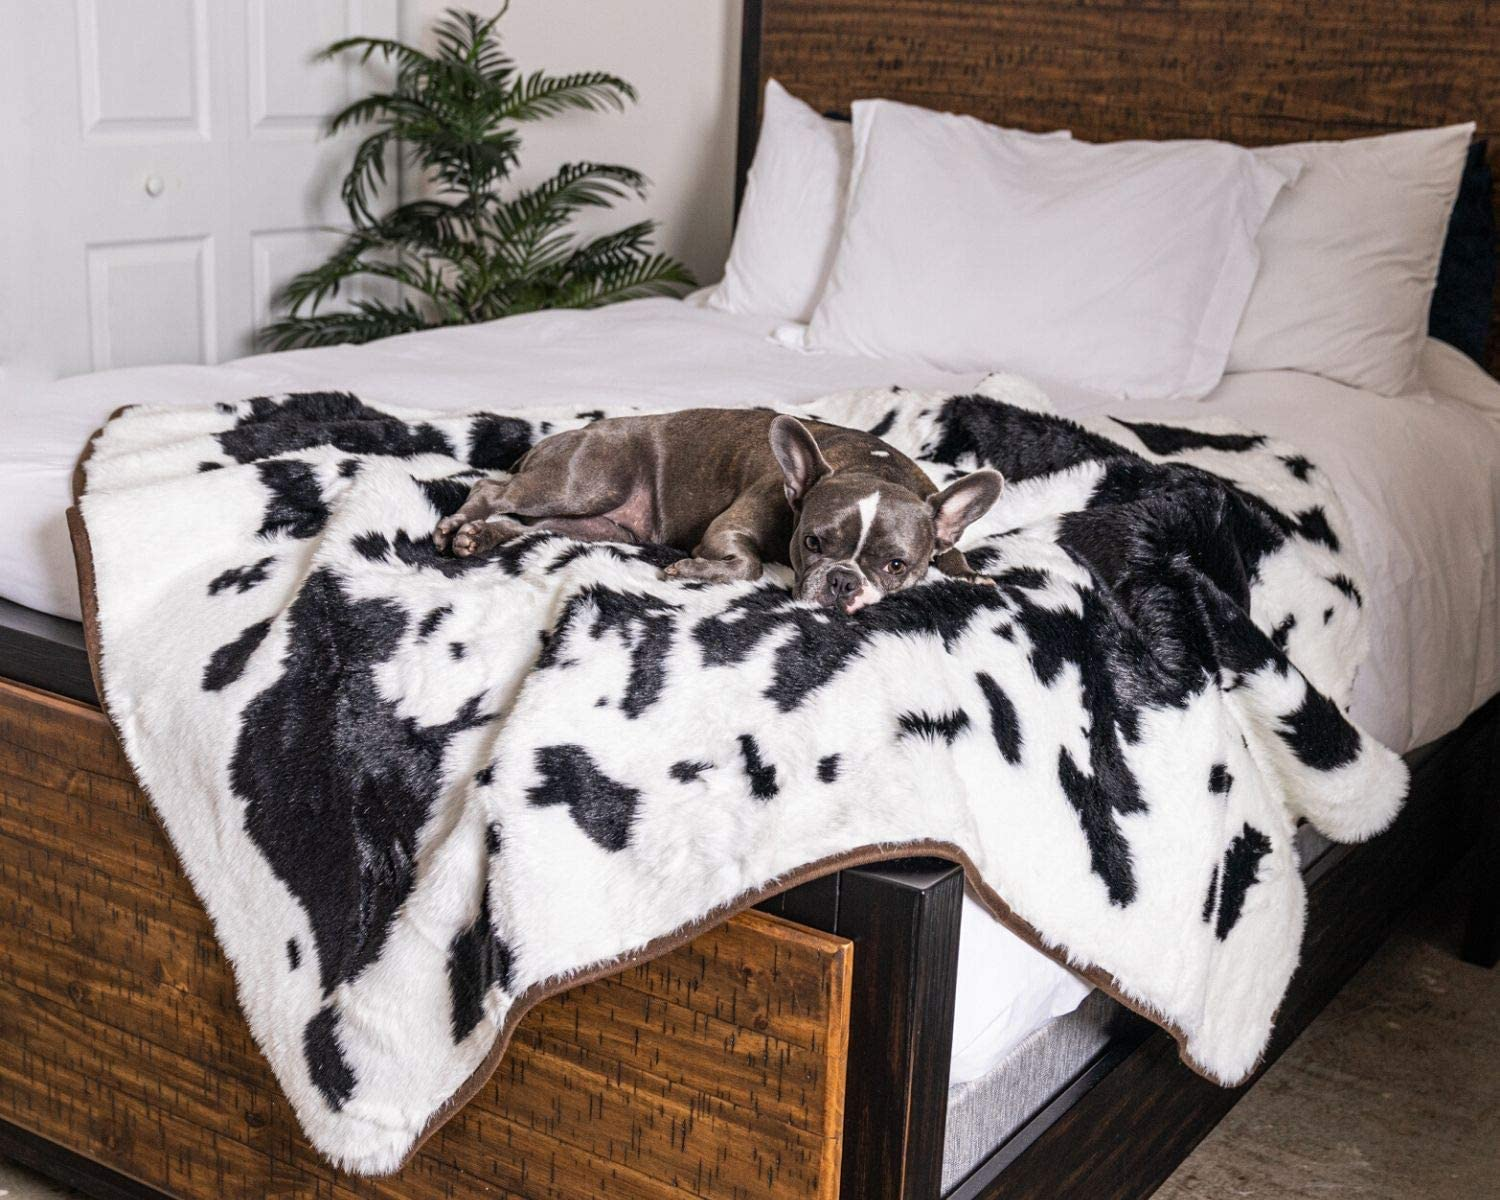 Treat A Dog PupProtector Waterproof Dog Blanket - Soft Plush Throw Protects Bed, Couch, or Car from Spills, Stains, Scratching, or Pet Fur - Machine Washable (Black Faux Cowhide)